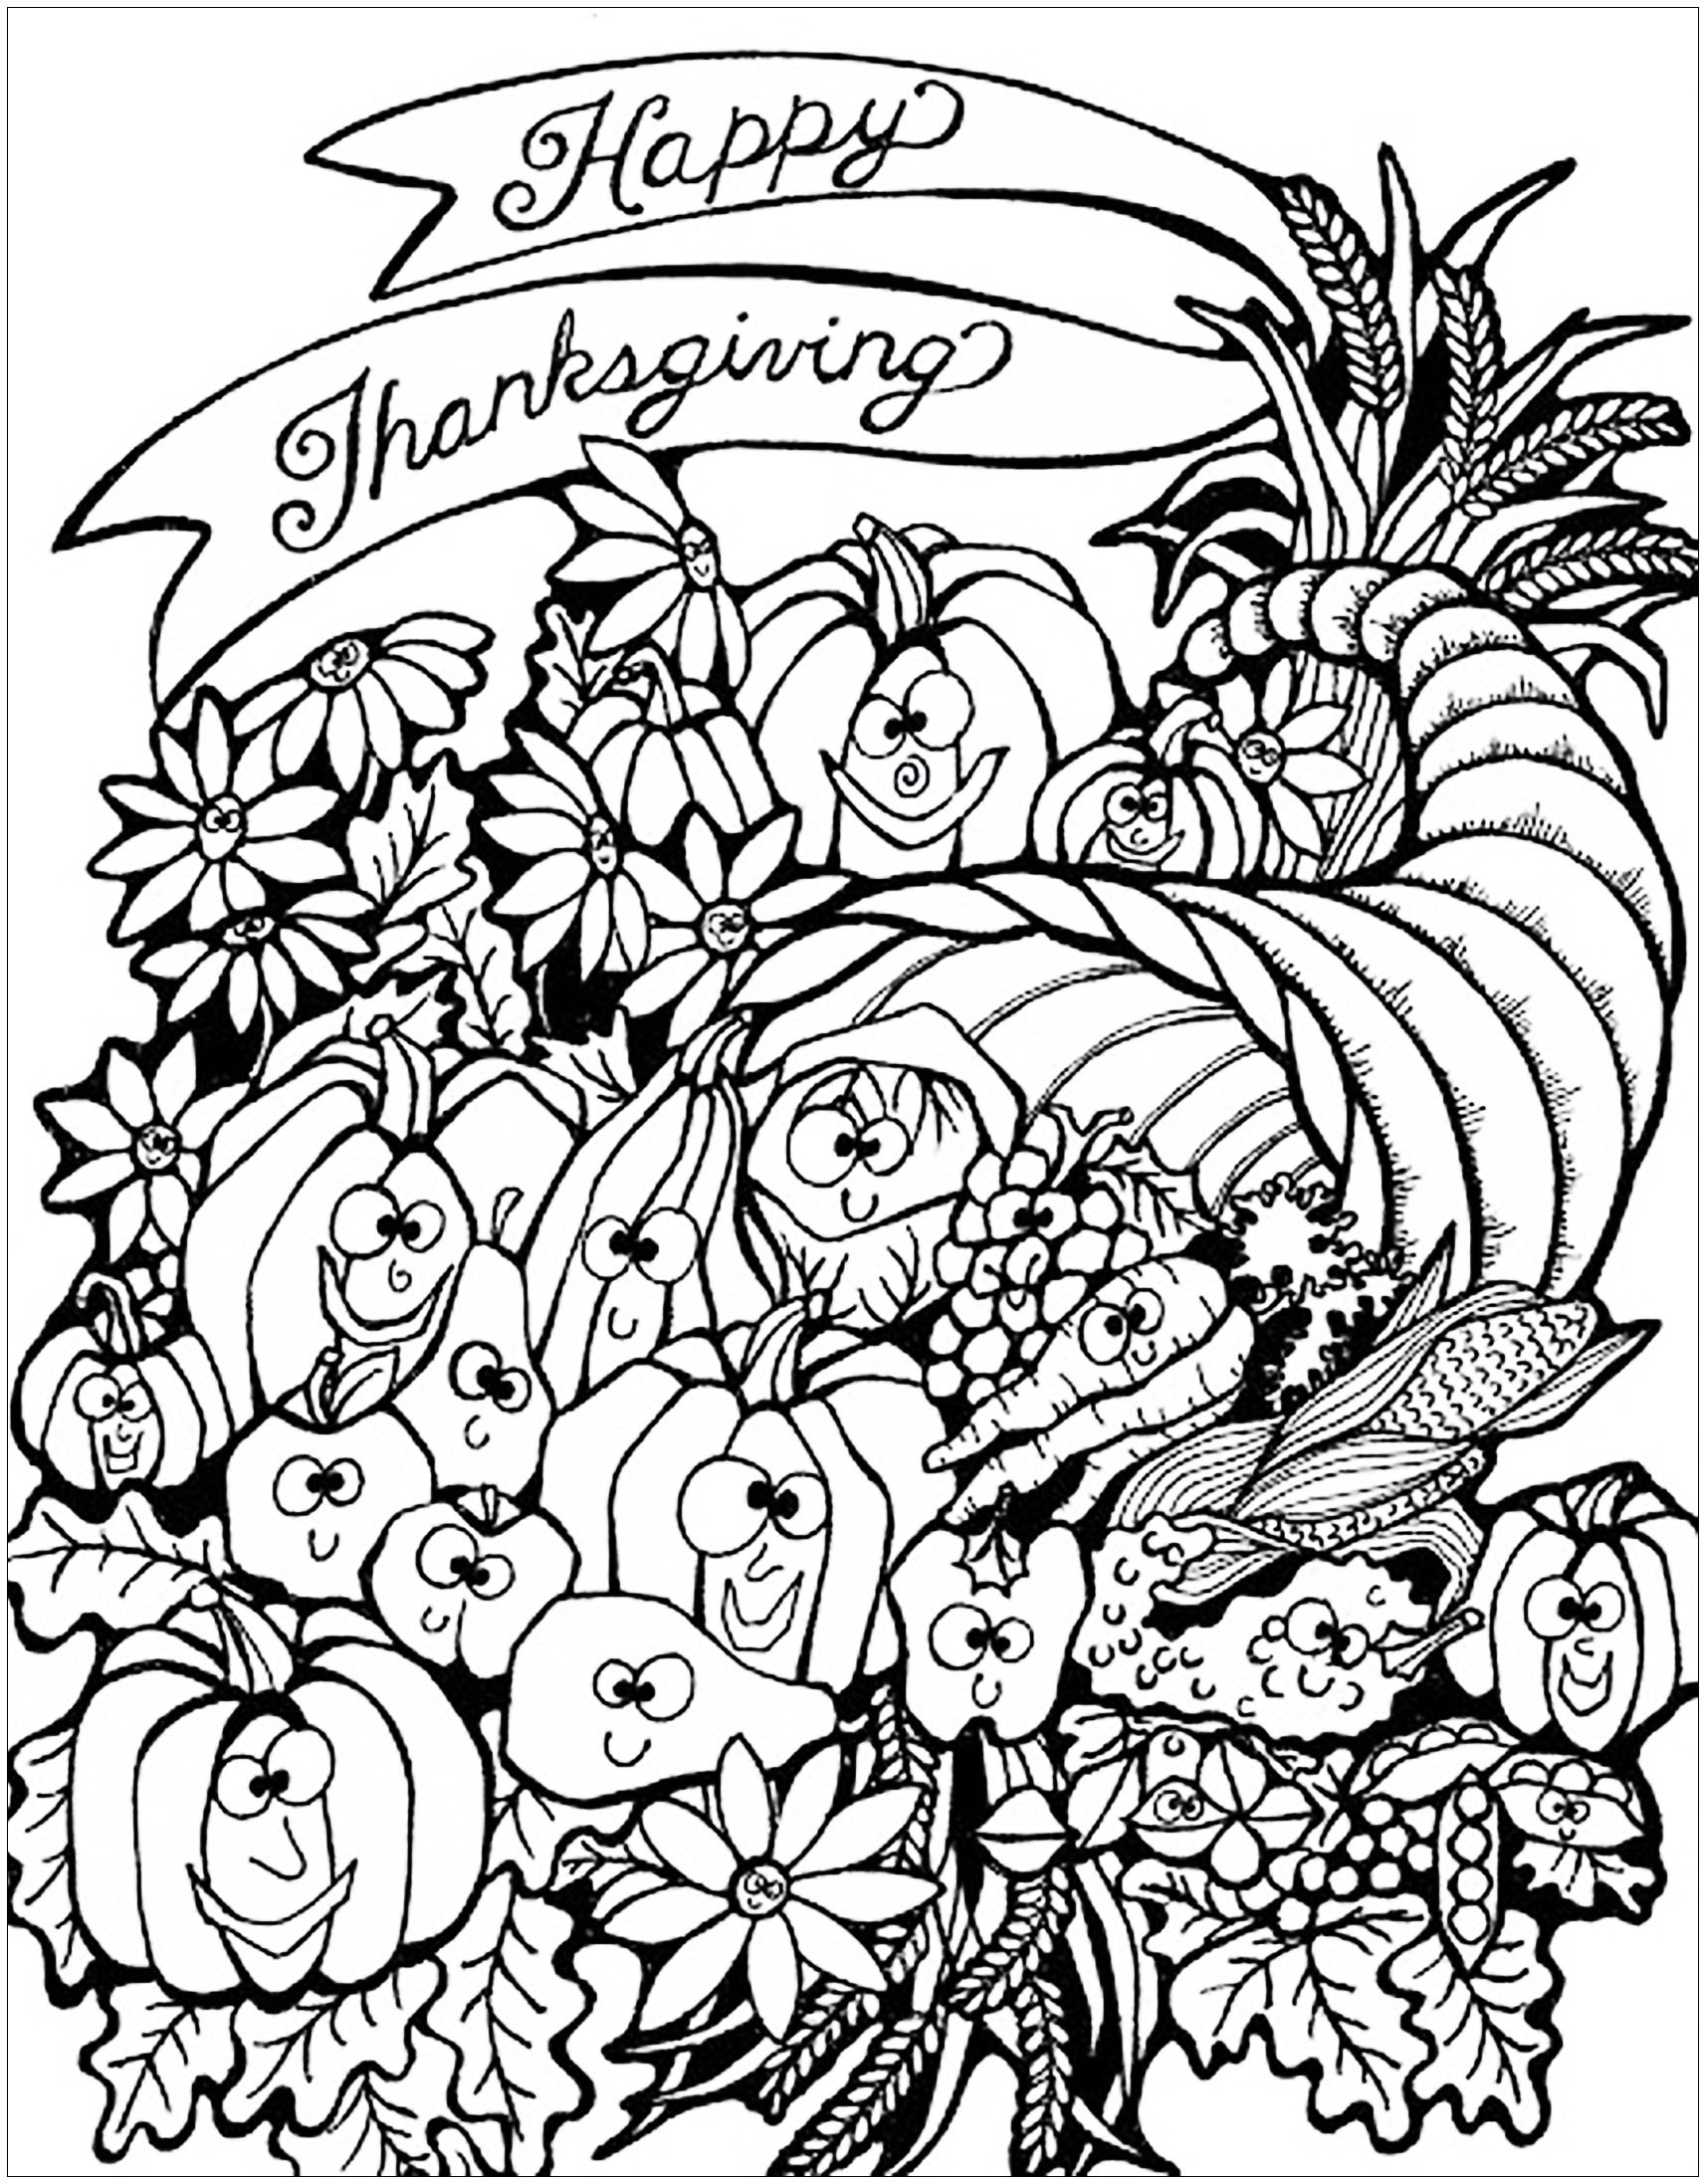 thanksgiving day coloring pages thanksgiving for kids thanksgiving kids coloring pages thanksgiving coloring pages day